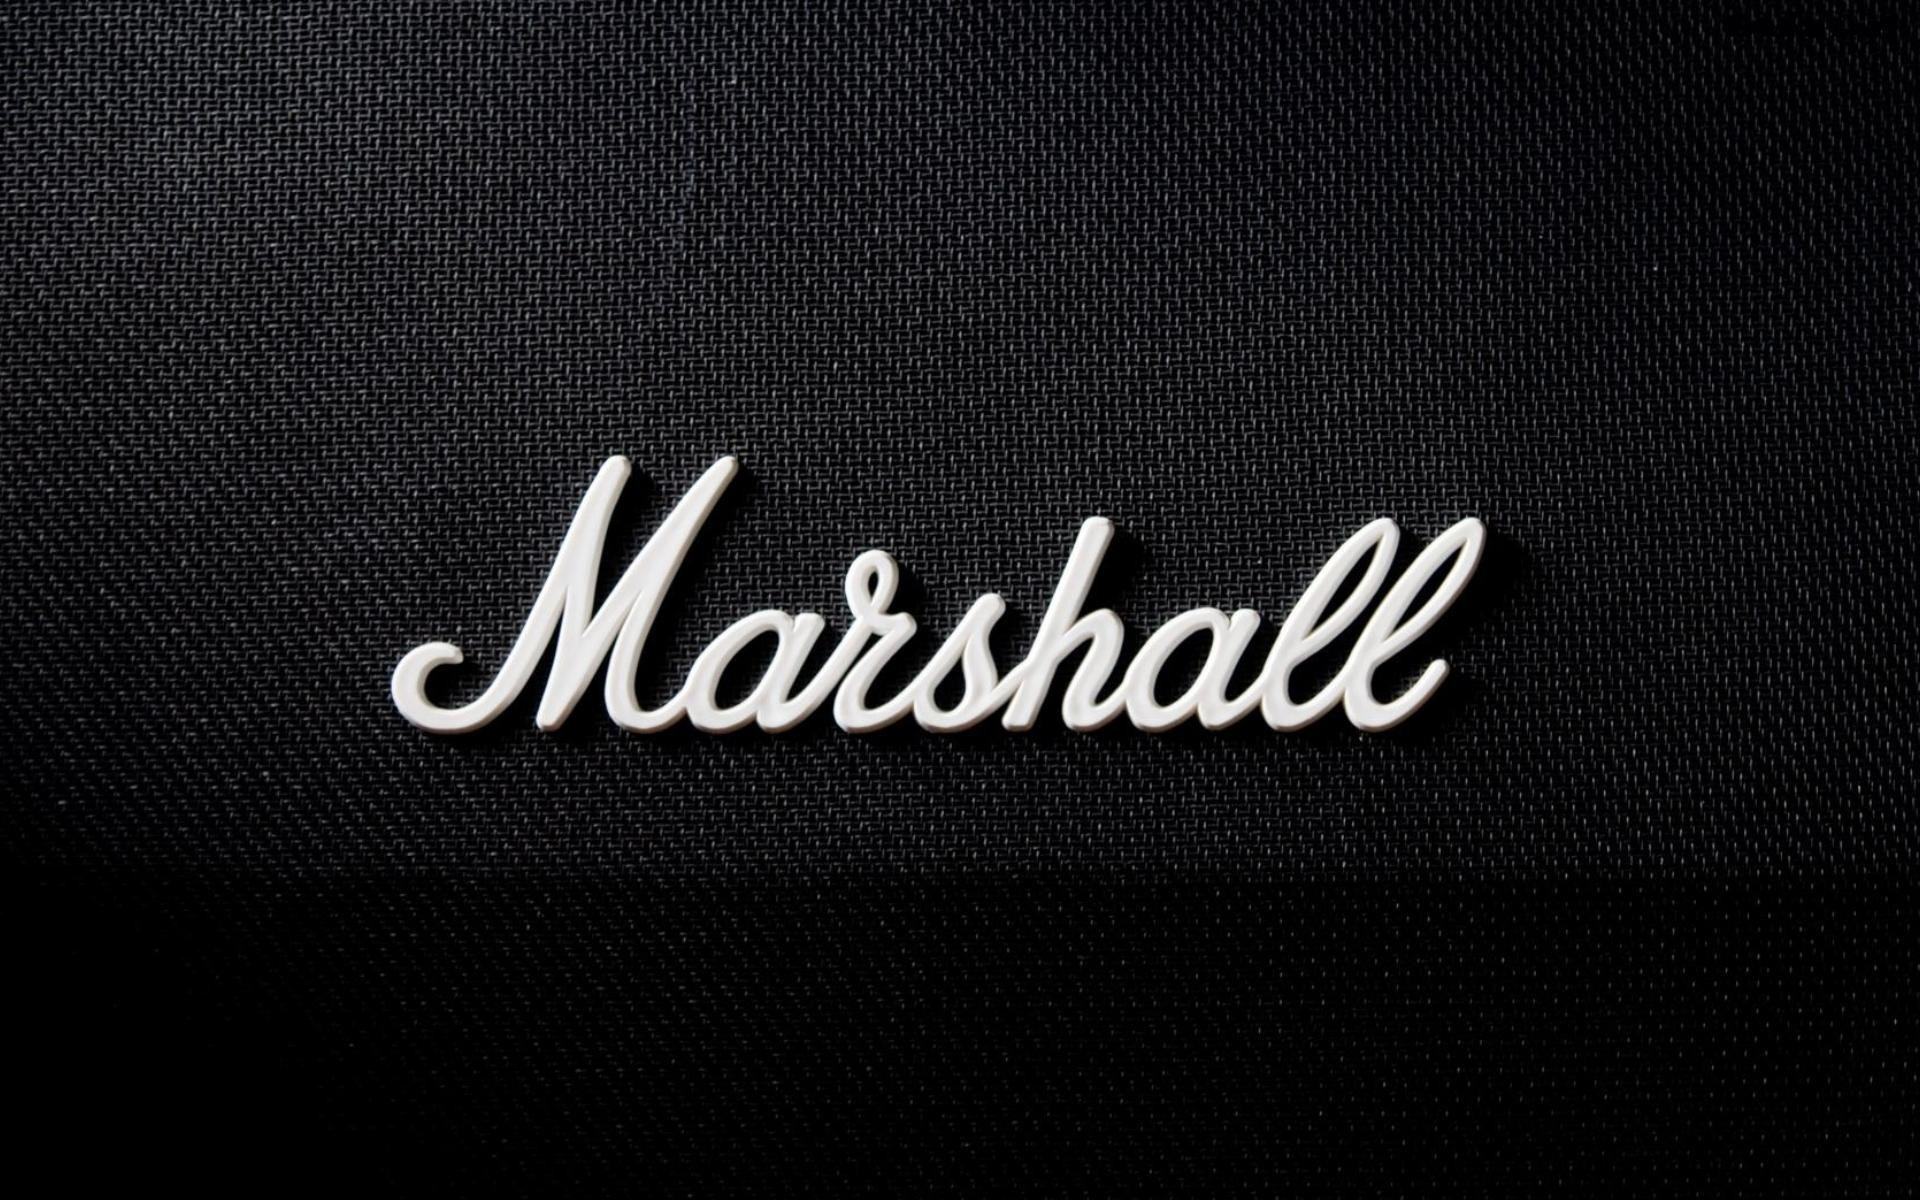 Marshall Wallpaper